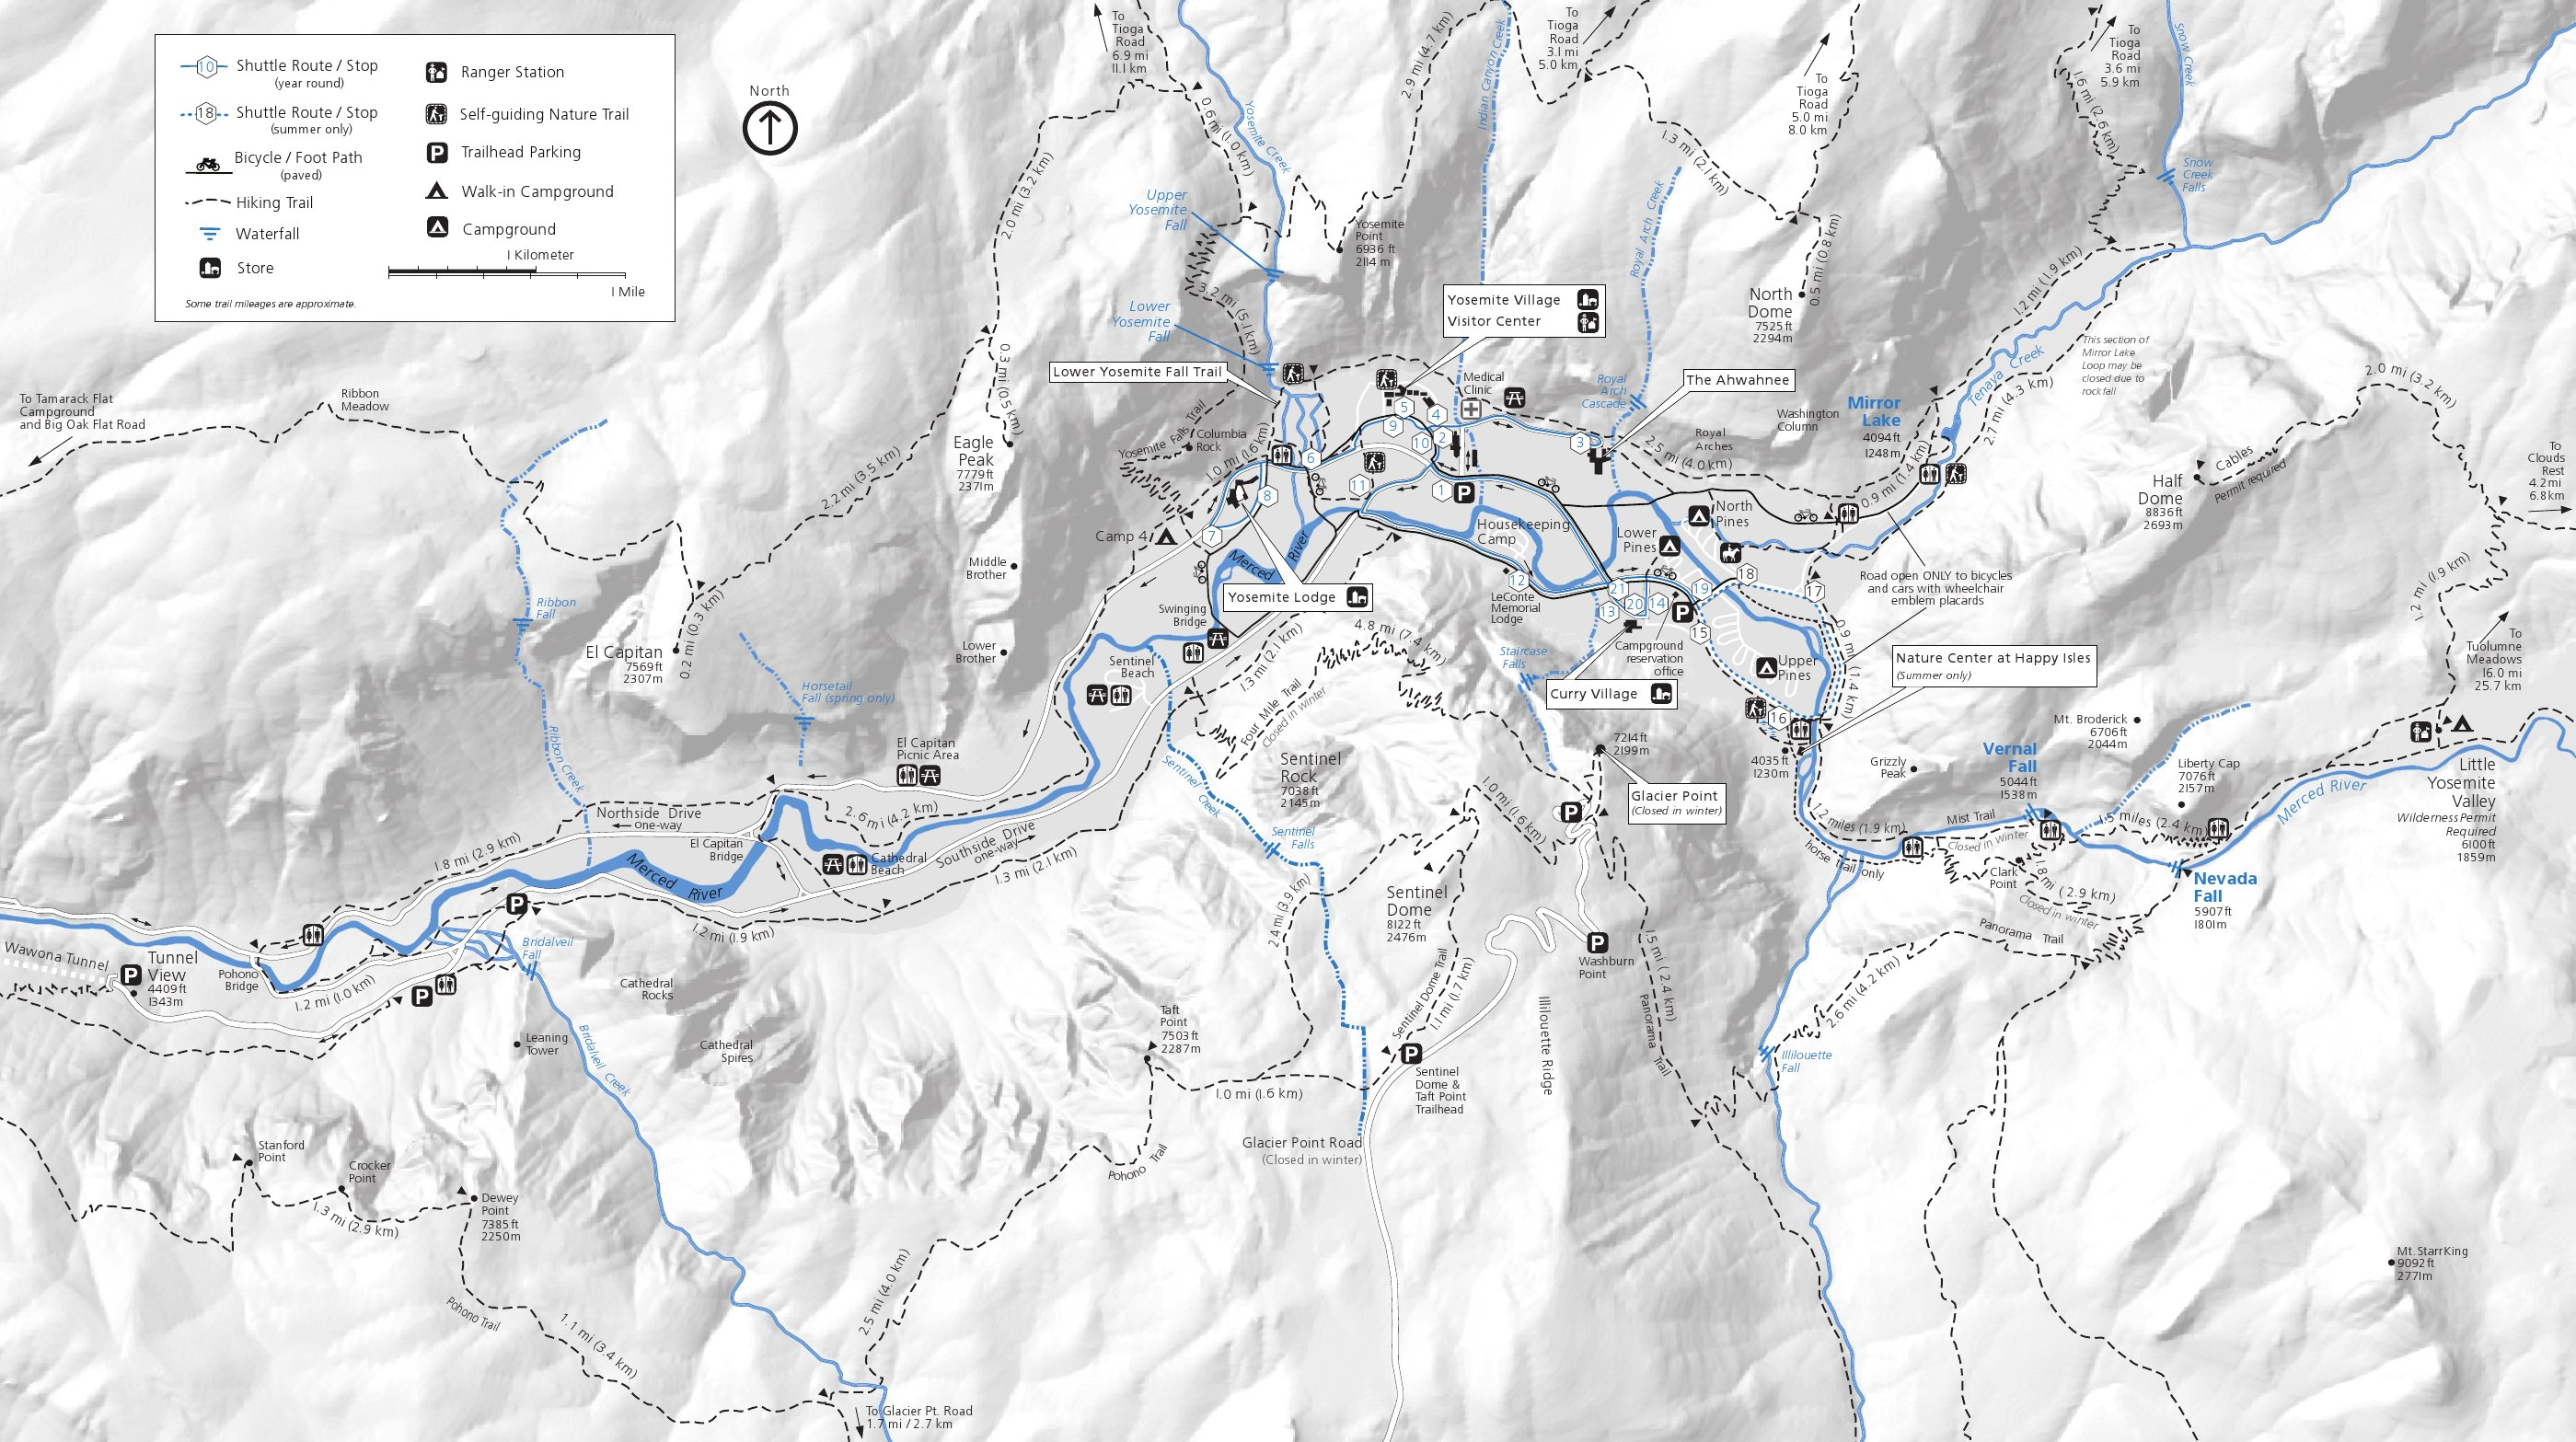 Yosemite Maps | NPMaps.com - just free maps, period. on culture of yosemite, political map of yosemite, weather map of yosemite, physical map of yosemite, topo map of yosemite, road map of yosemite, state map of yosemite, geological map of yosemite, climate of yosemite, geography of yosemite,